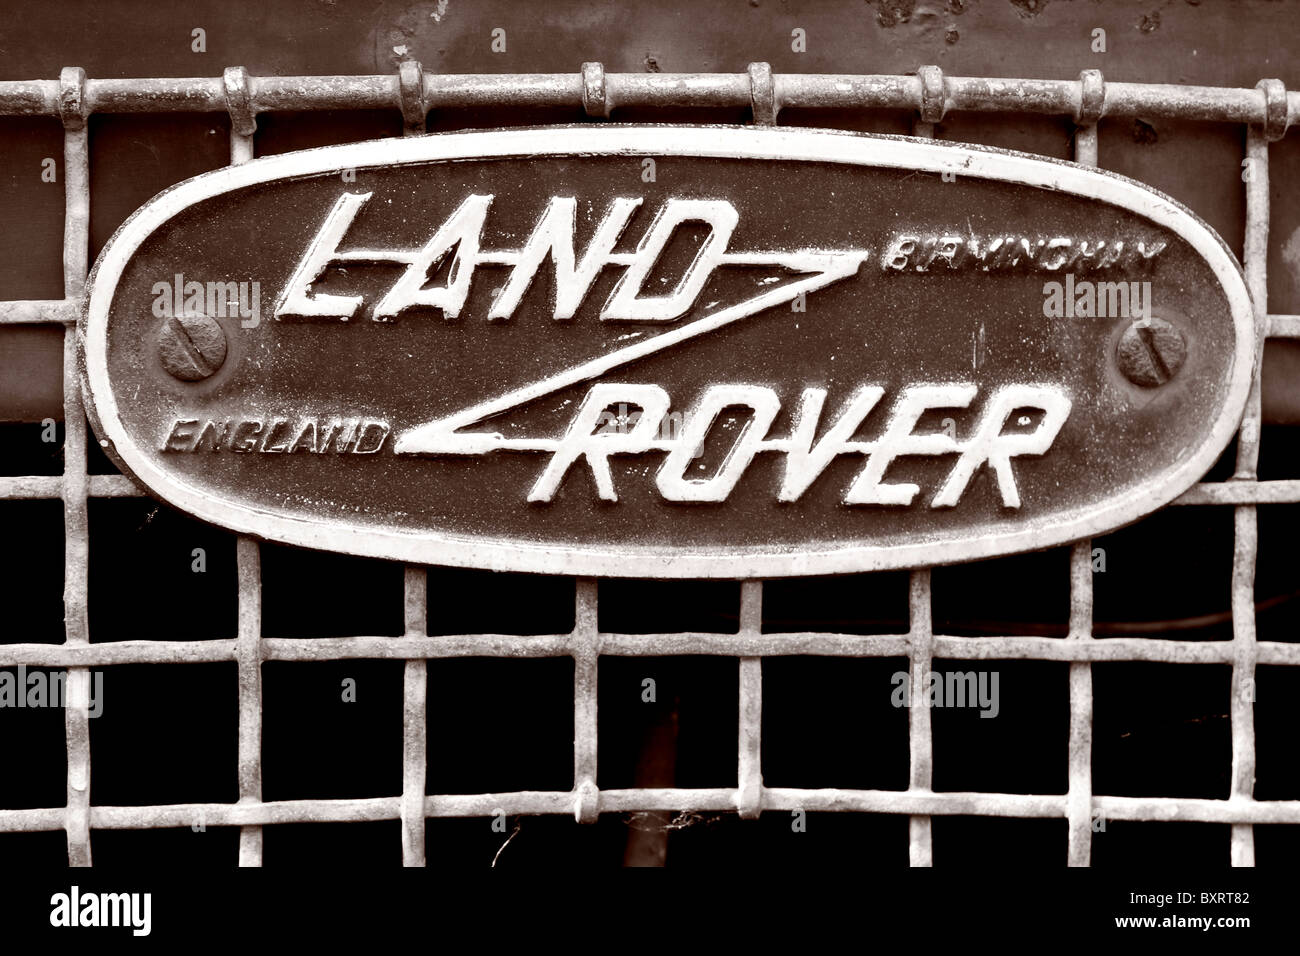 The Land Rover front logo badge on a grill of a vehicle. - Stock Image